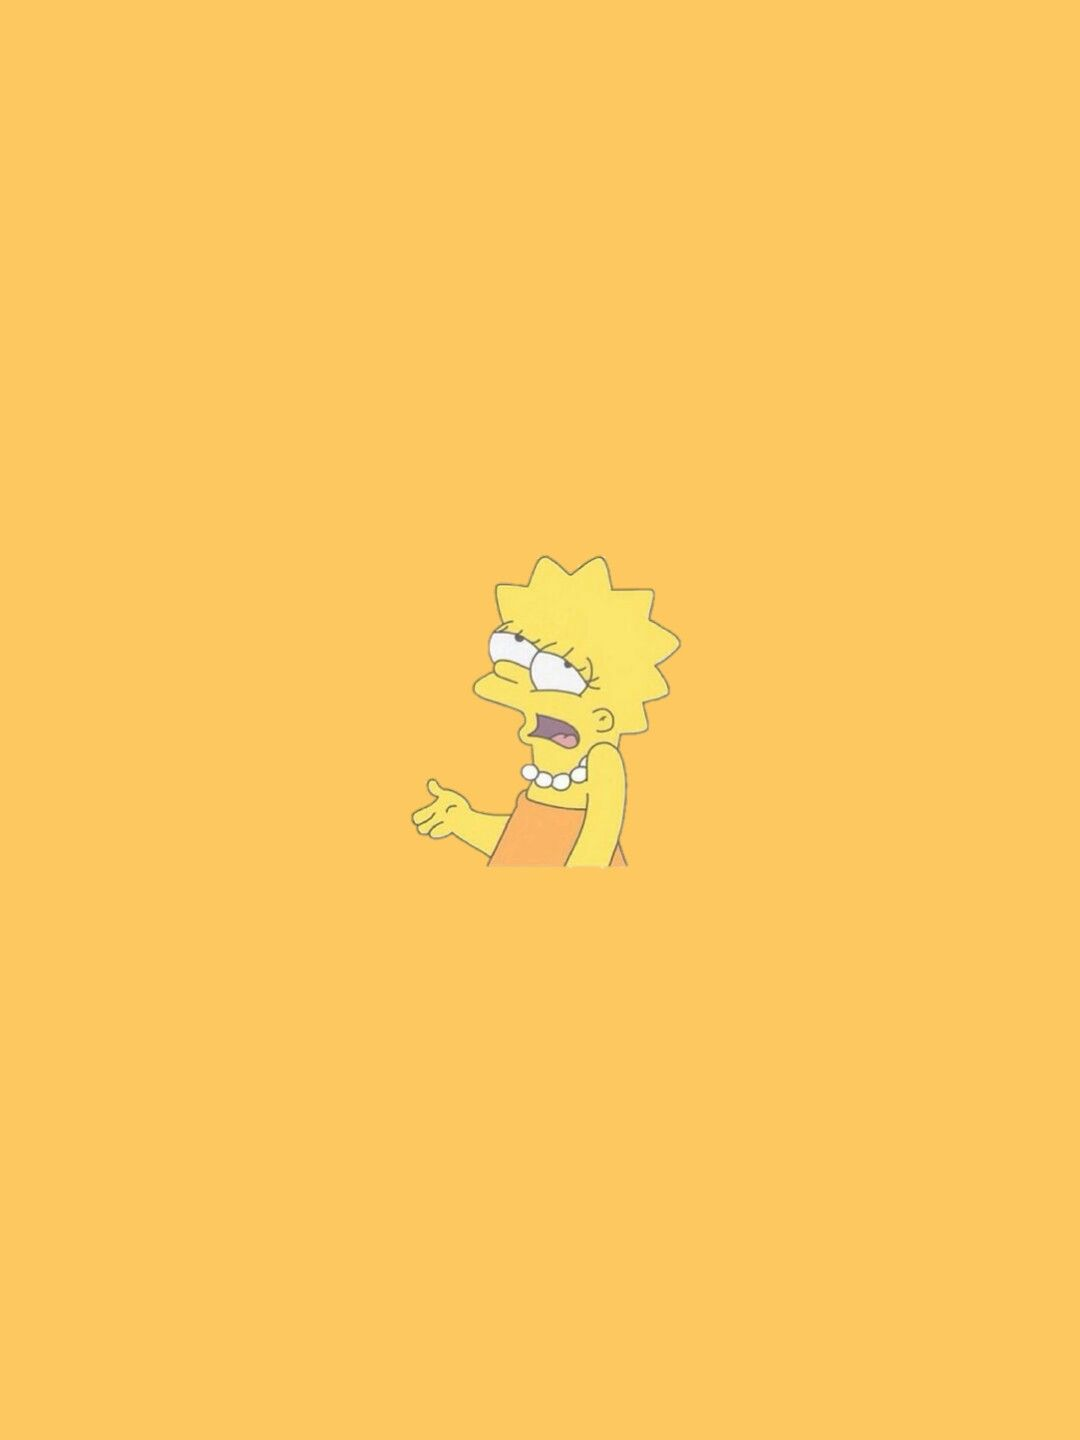 Wallpaper Wallpapers In 2019 Simpson Wallpaper Iphone Emoji